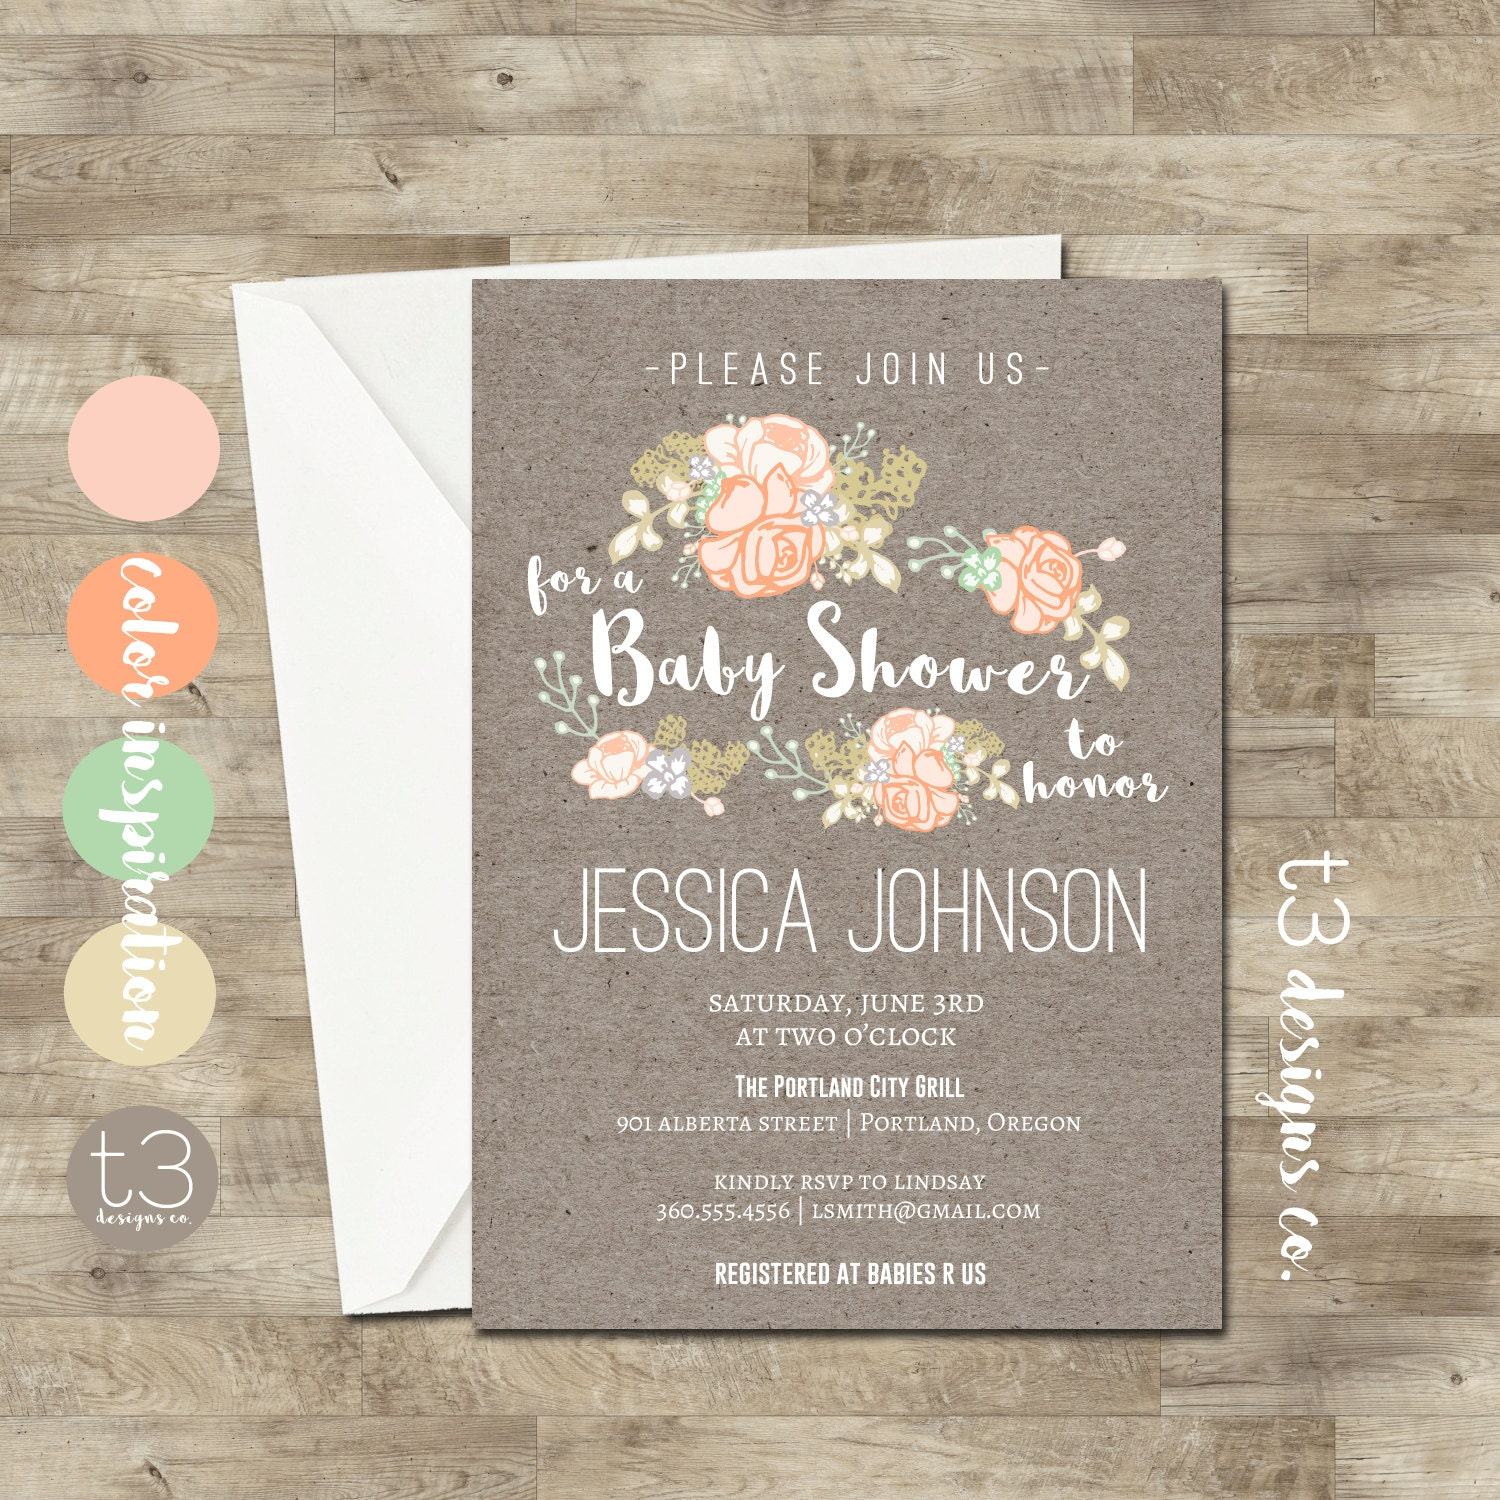 Country Baby Shower Invitation, Rustic Baby Shower Invite, Floral Burlap  Baby, Printed Invitations, Country Baby Shower Invitation, Neutral